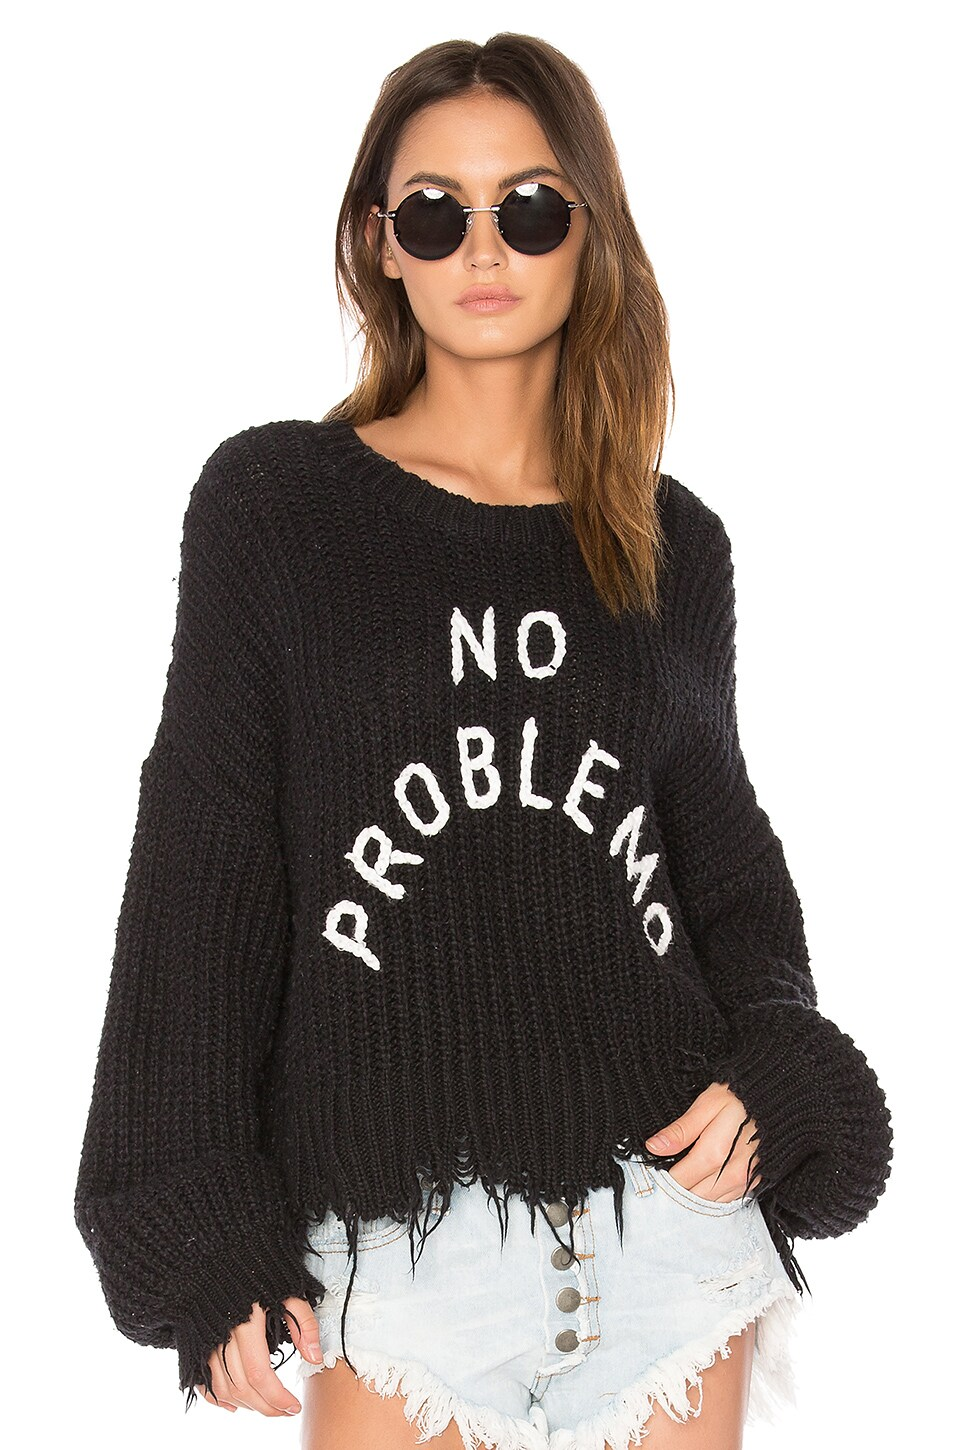 No Problemo Sweater